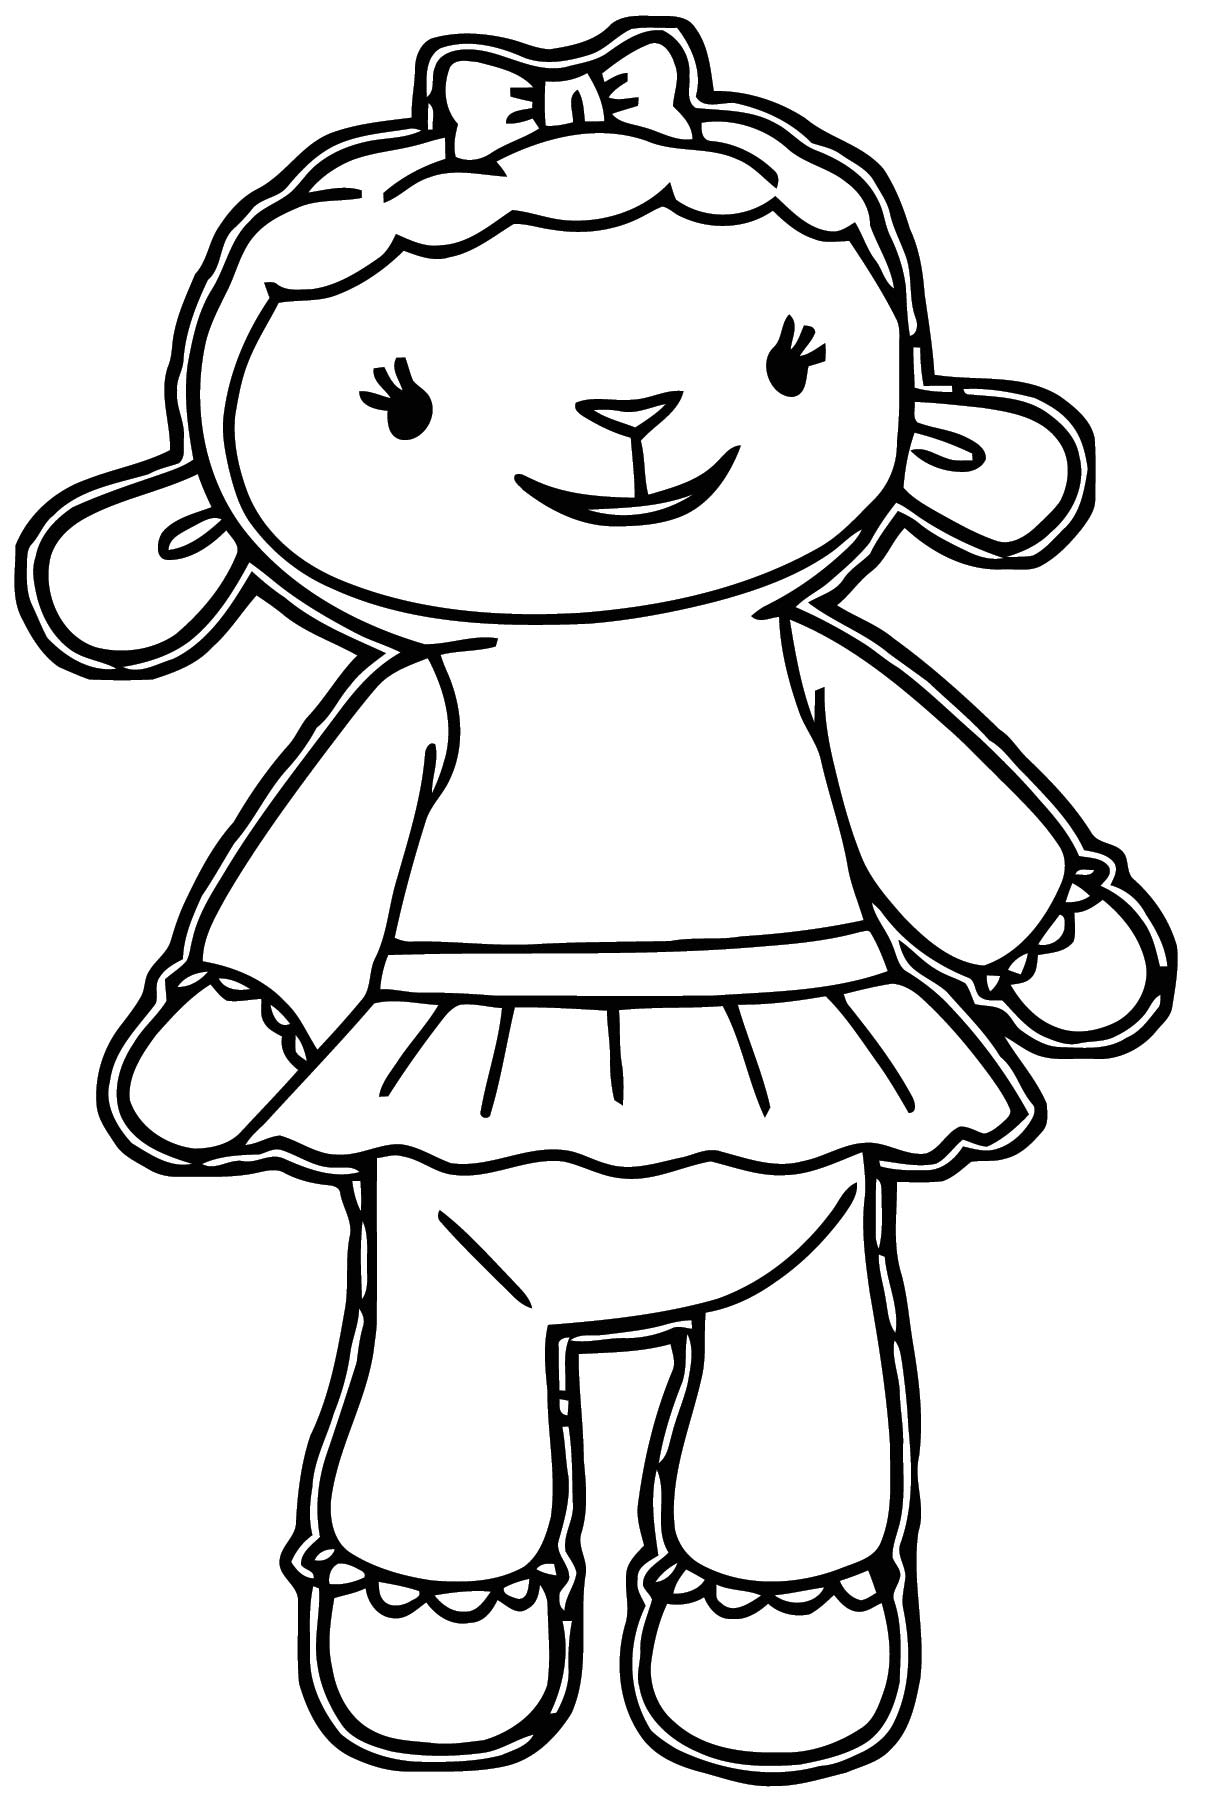 lambie 4 coloring page